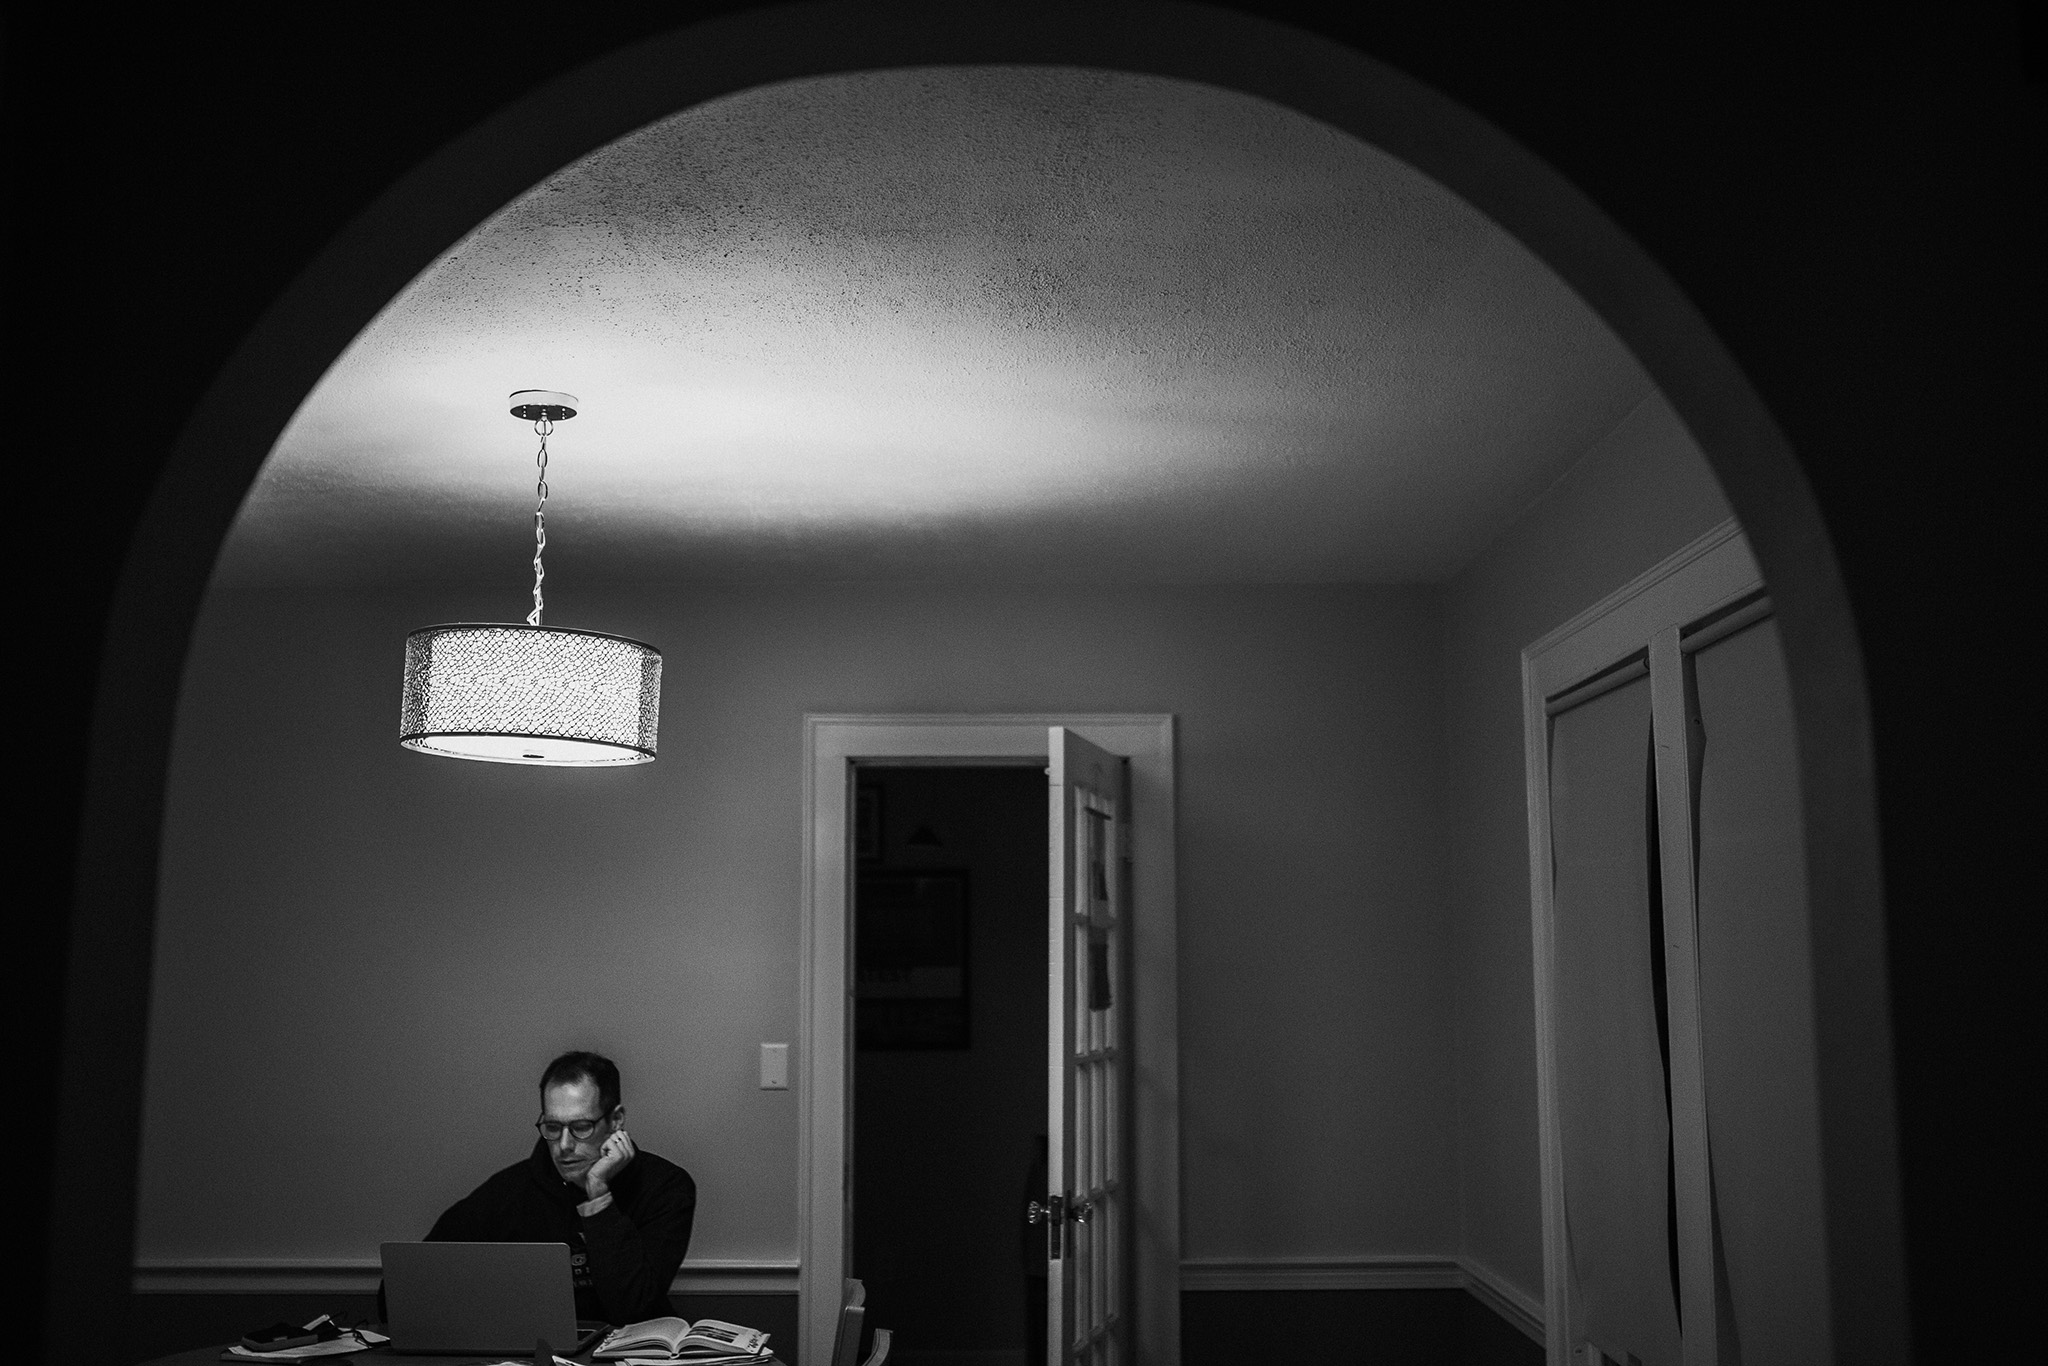 January 3: Dissertation writing, with the end in sight. He's a worker bee, my husband.